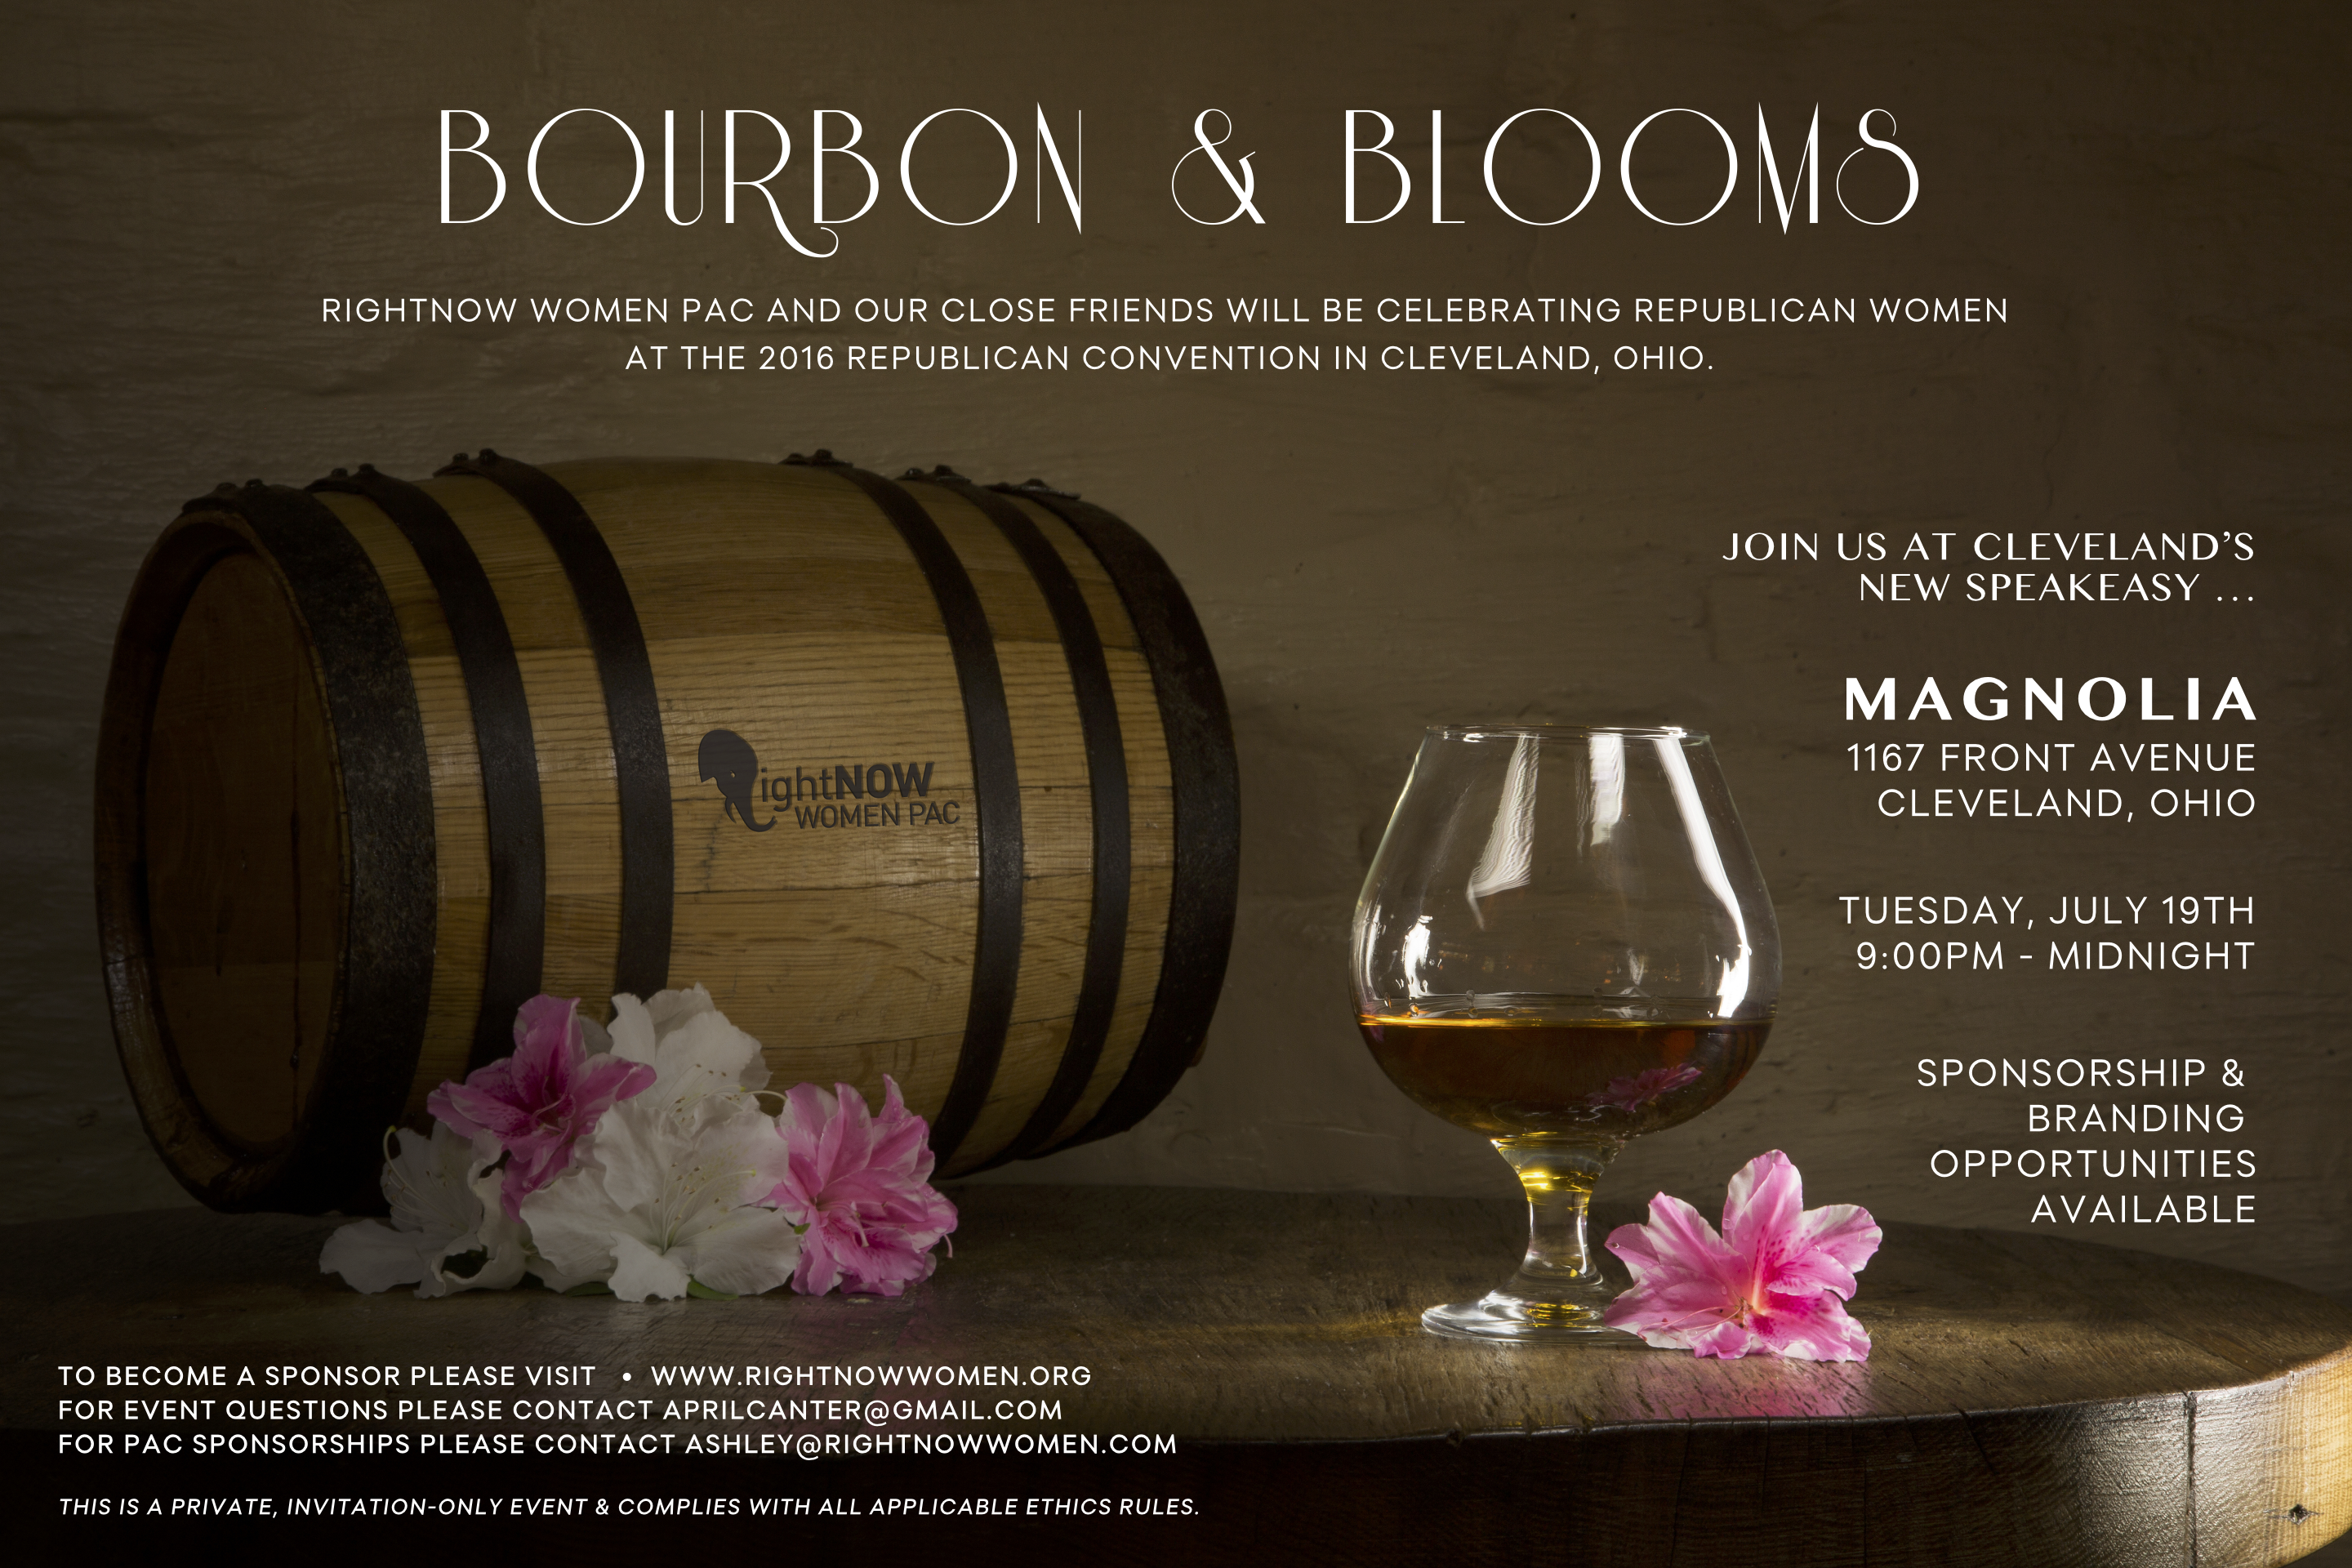 Bourbon___Blooms_updated_version.png